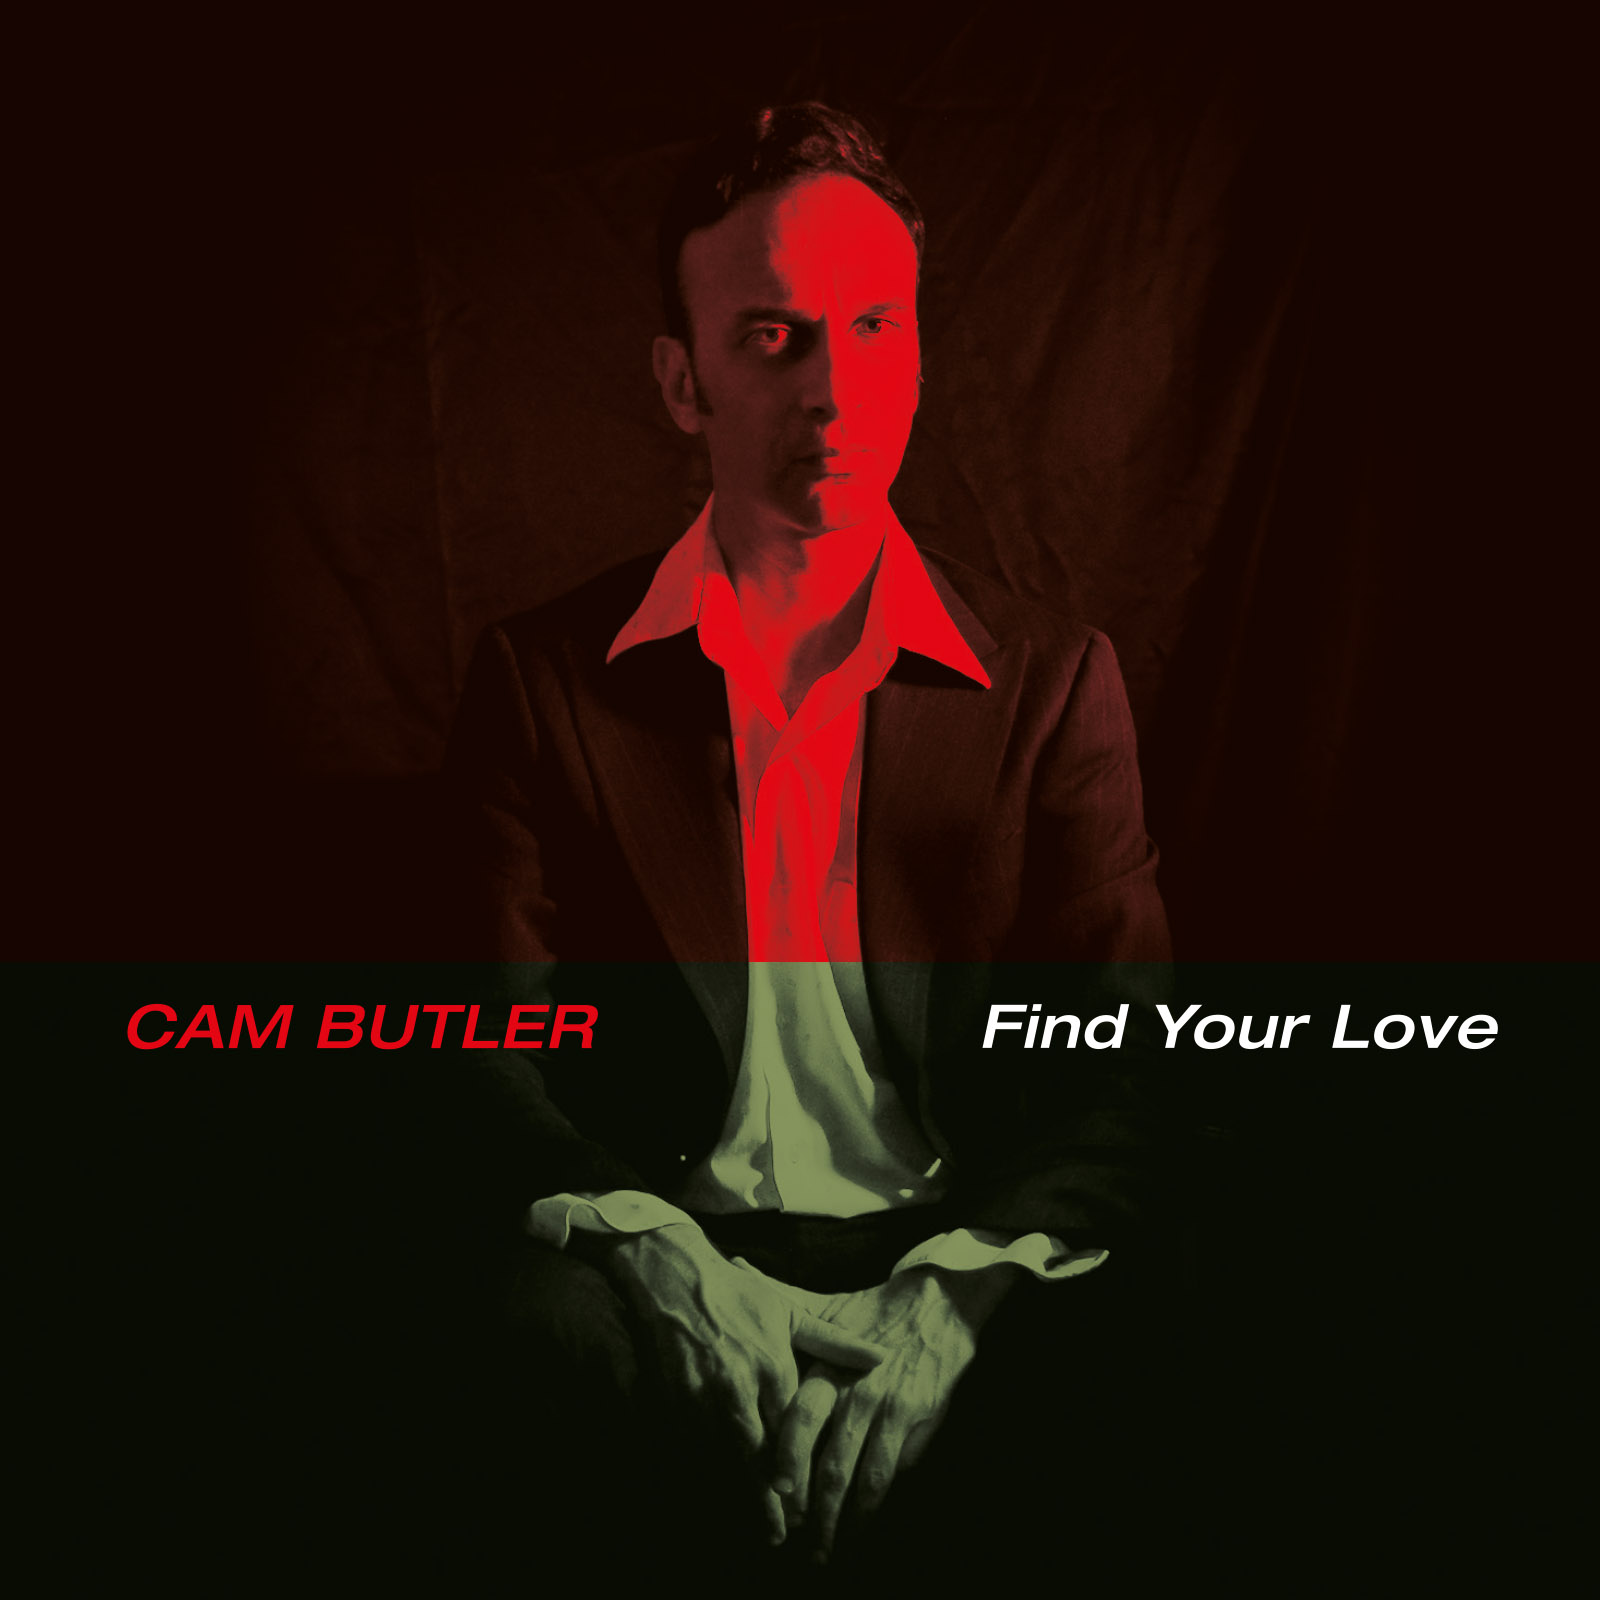 Album cover, showing Cam Butler in a white shirt and black suit, facing the camera.